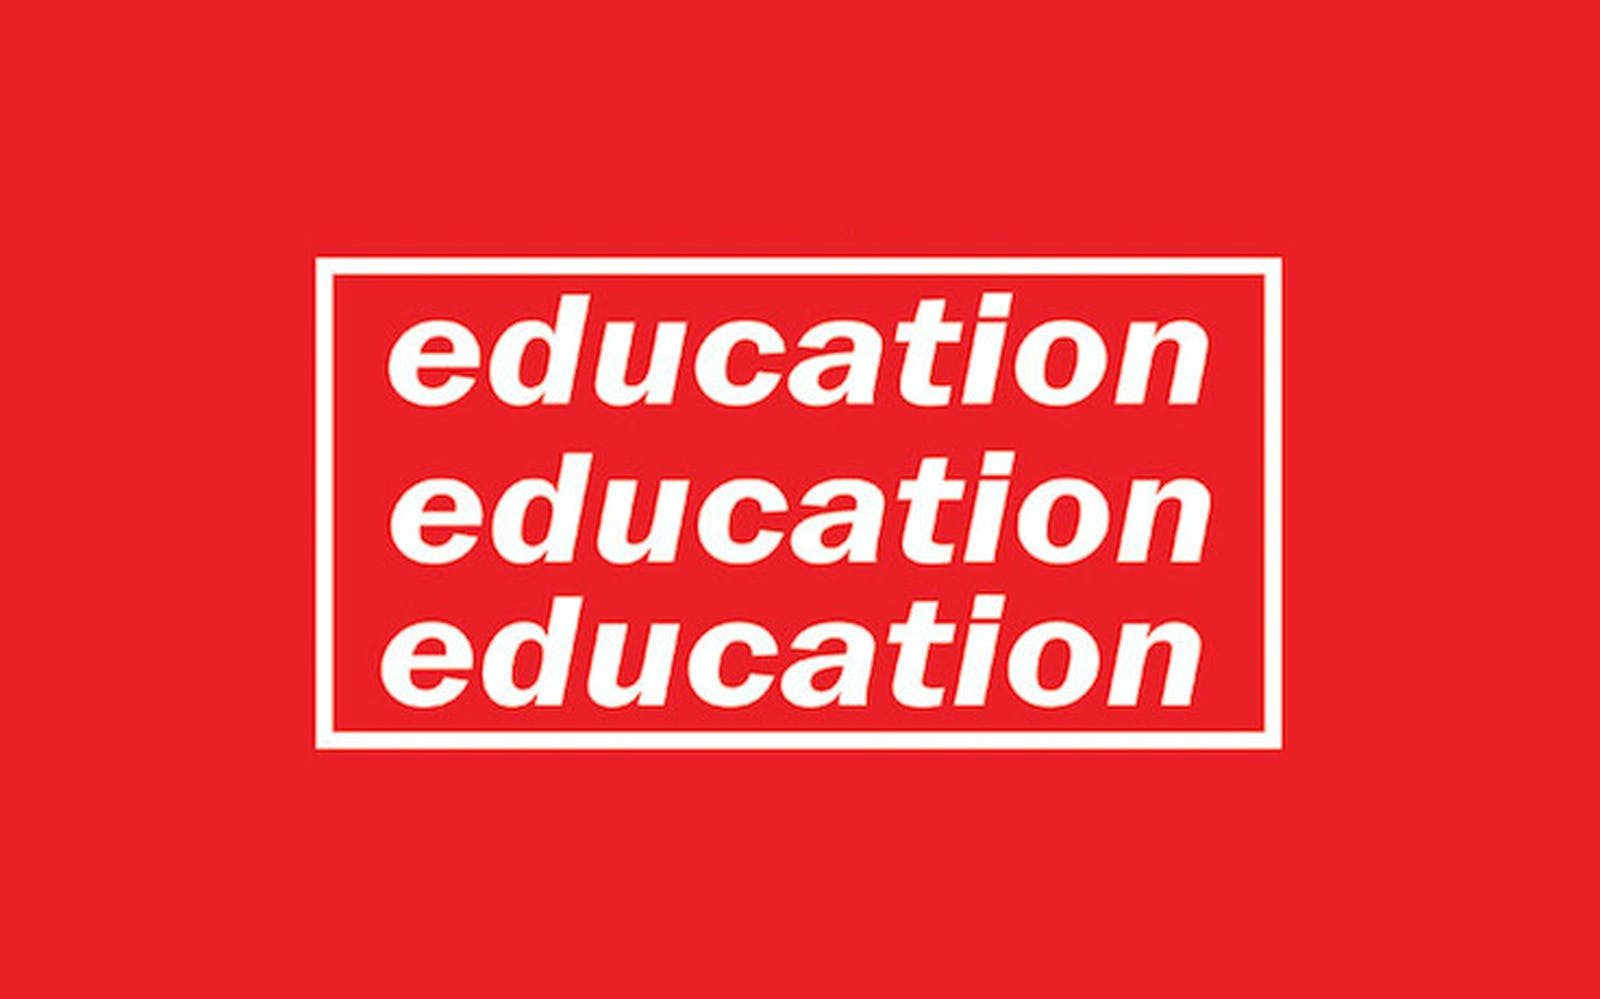 Education, Education, Education